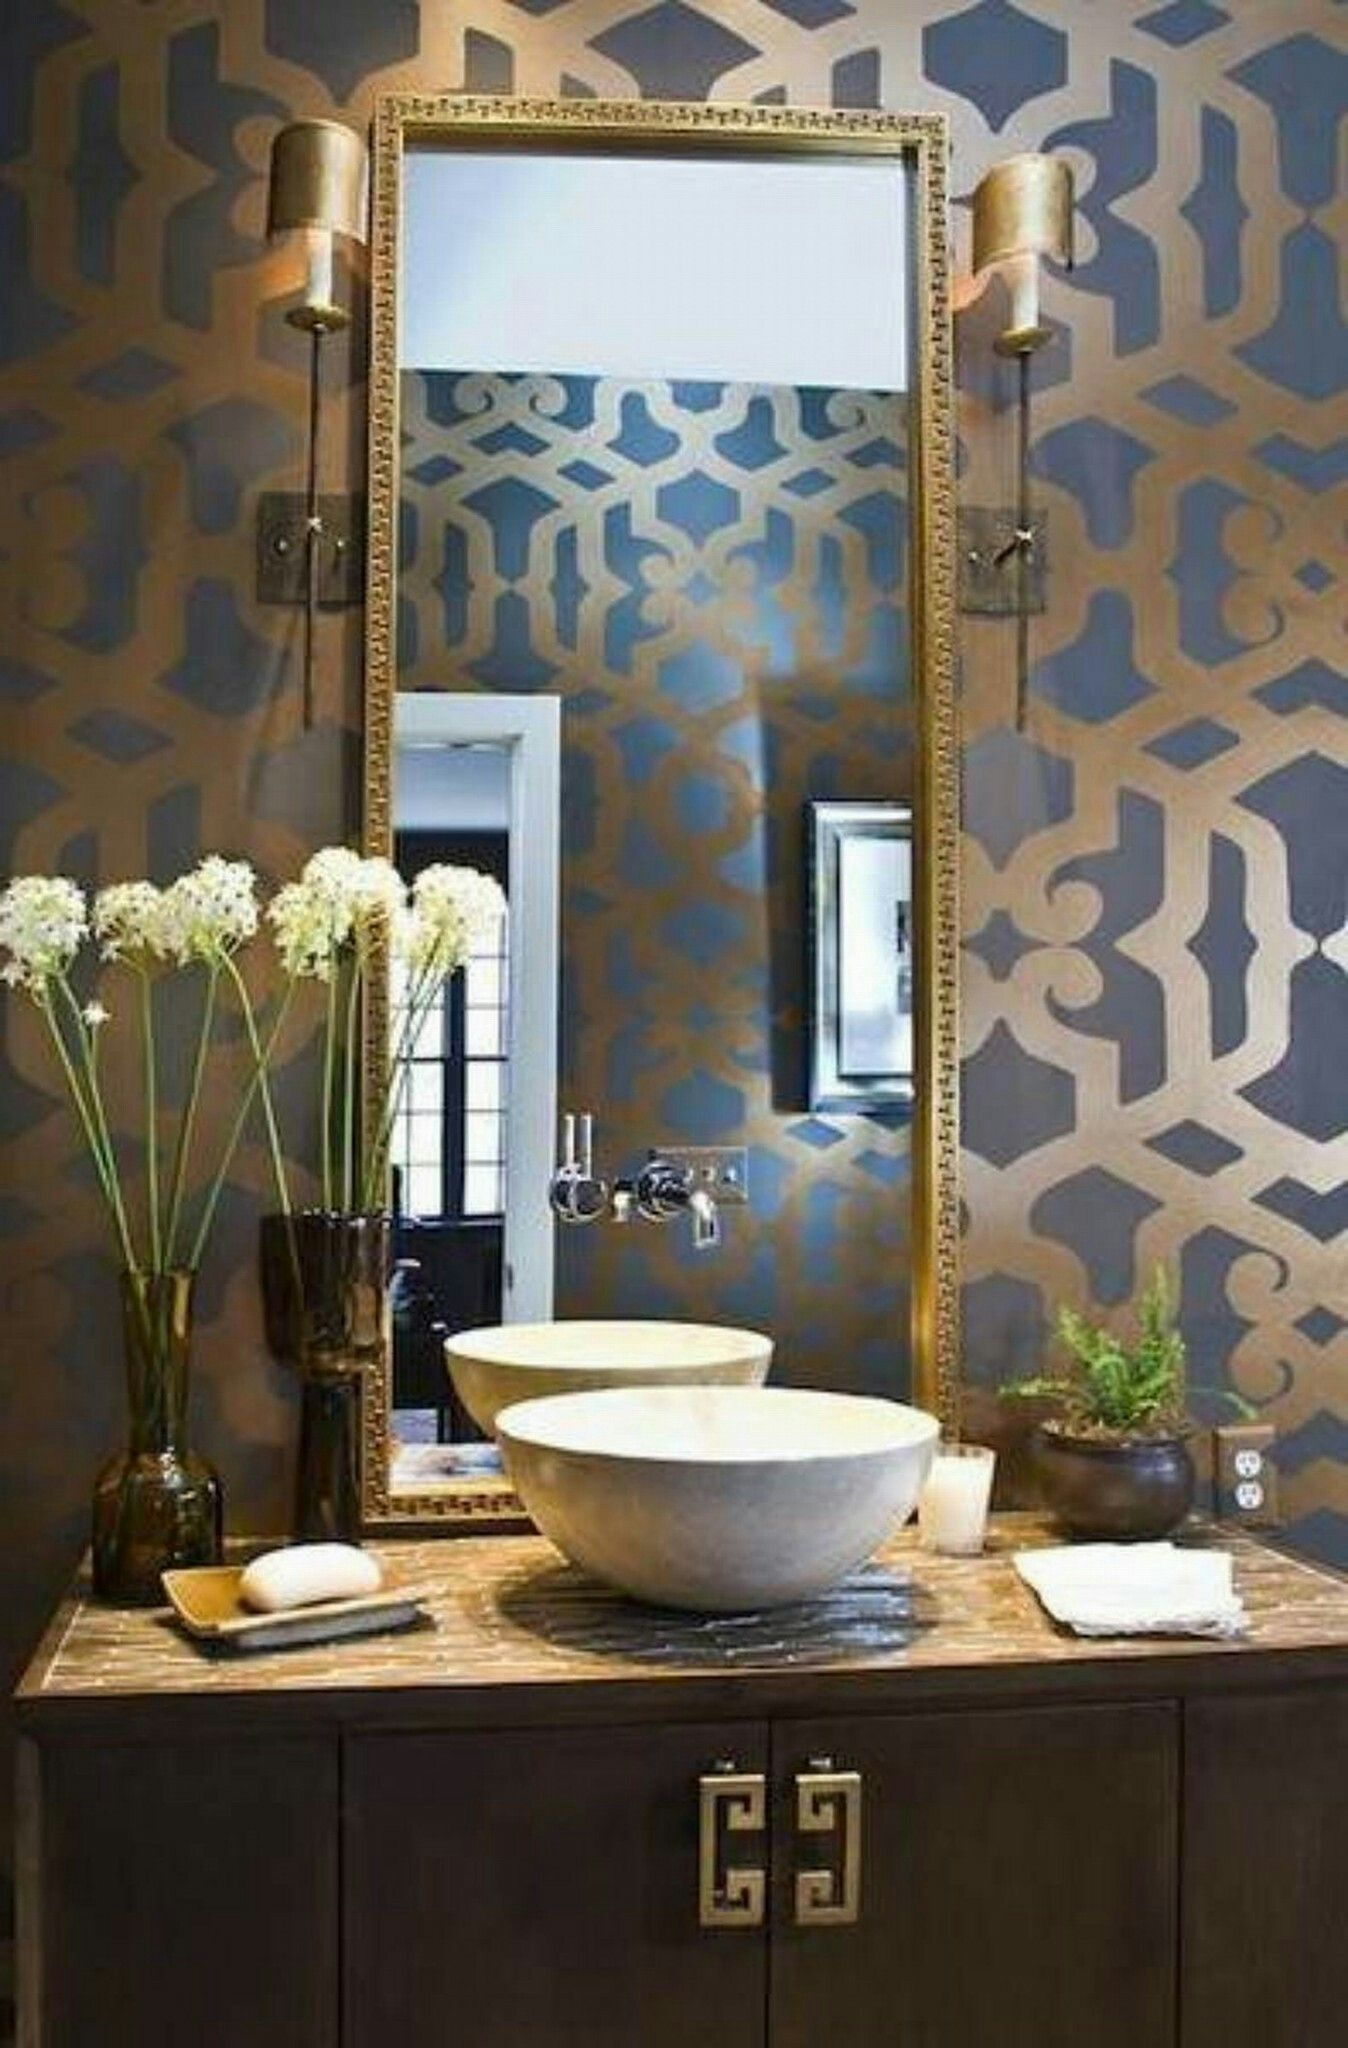 Pin von Felicia Hargrove auf bathrooms | Pinterest